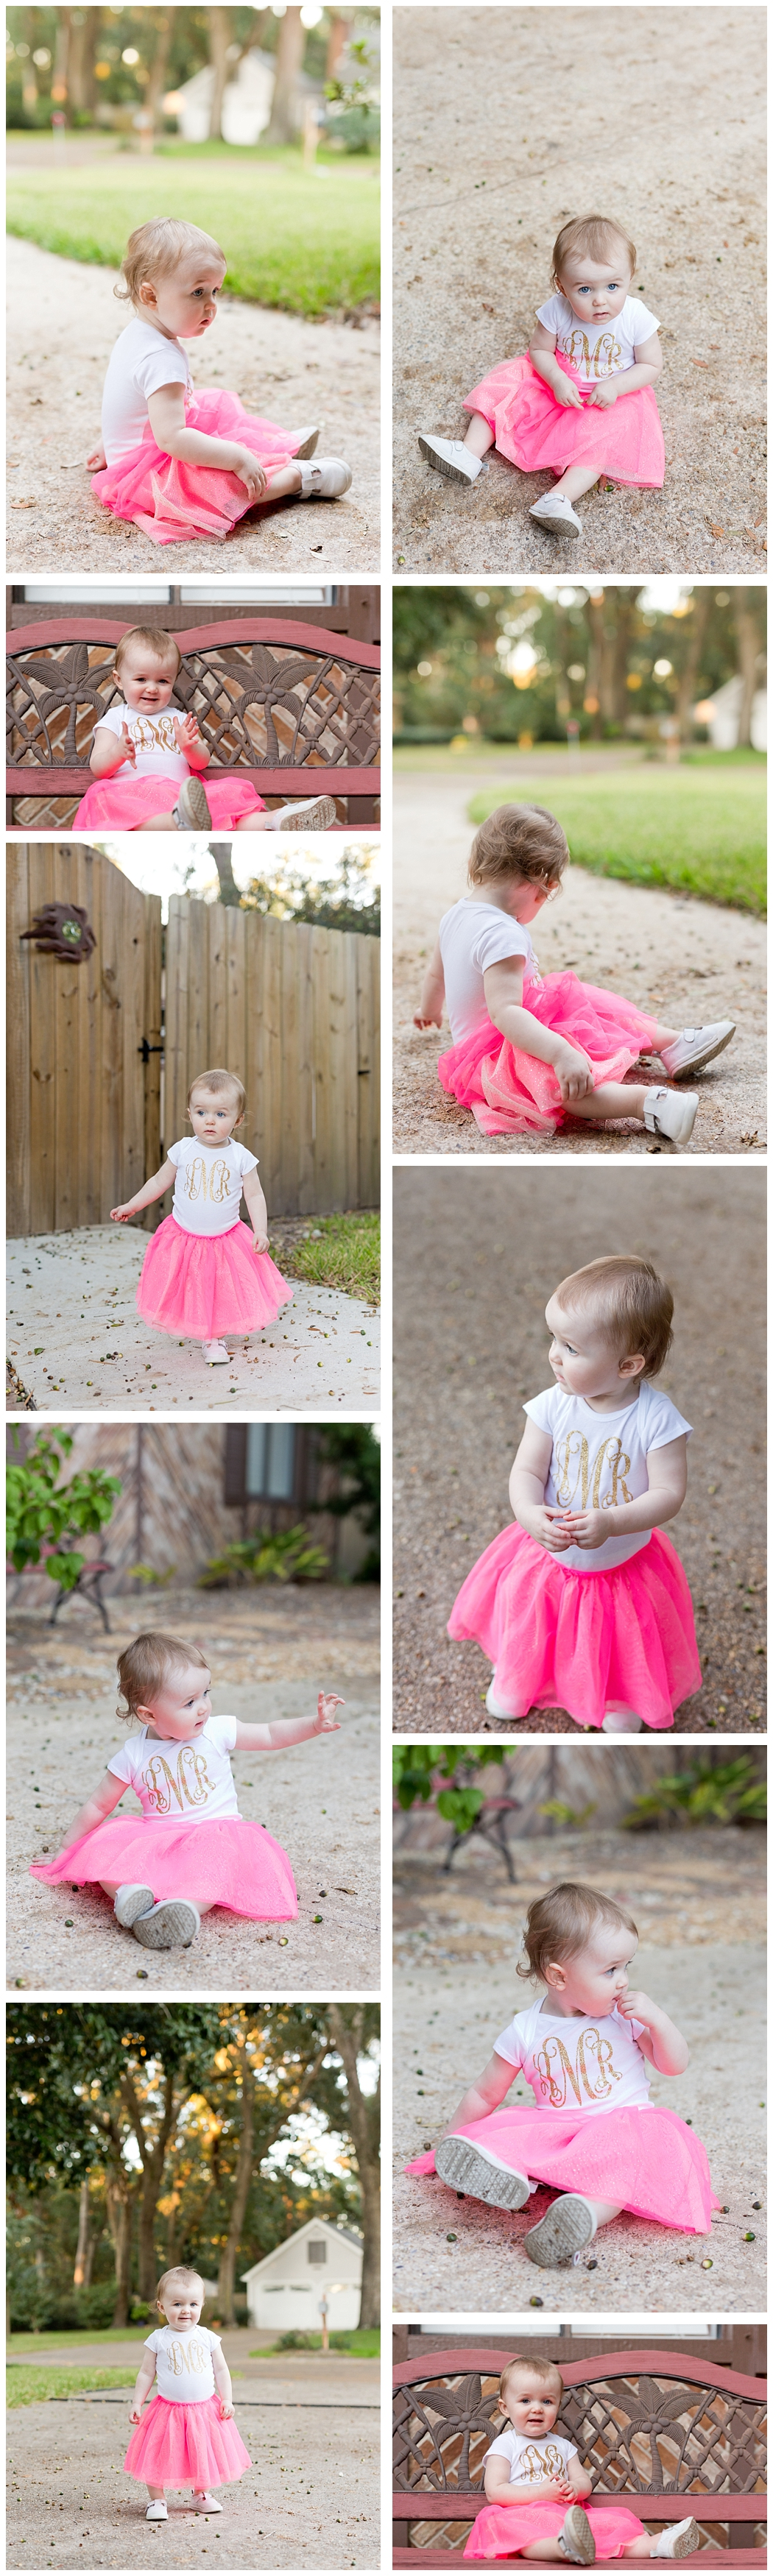 toddler girl in monogrammed onesie and pink tutu